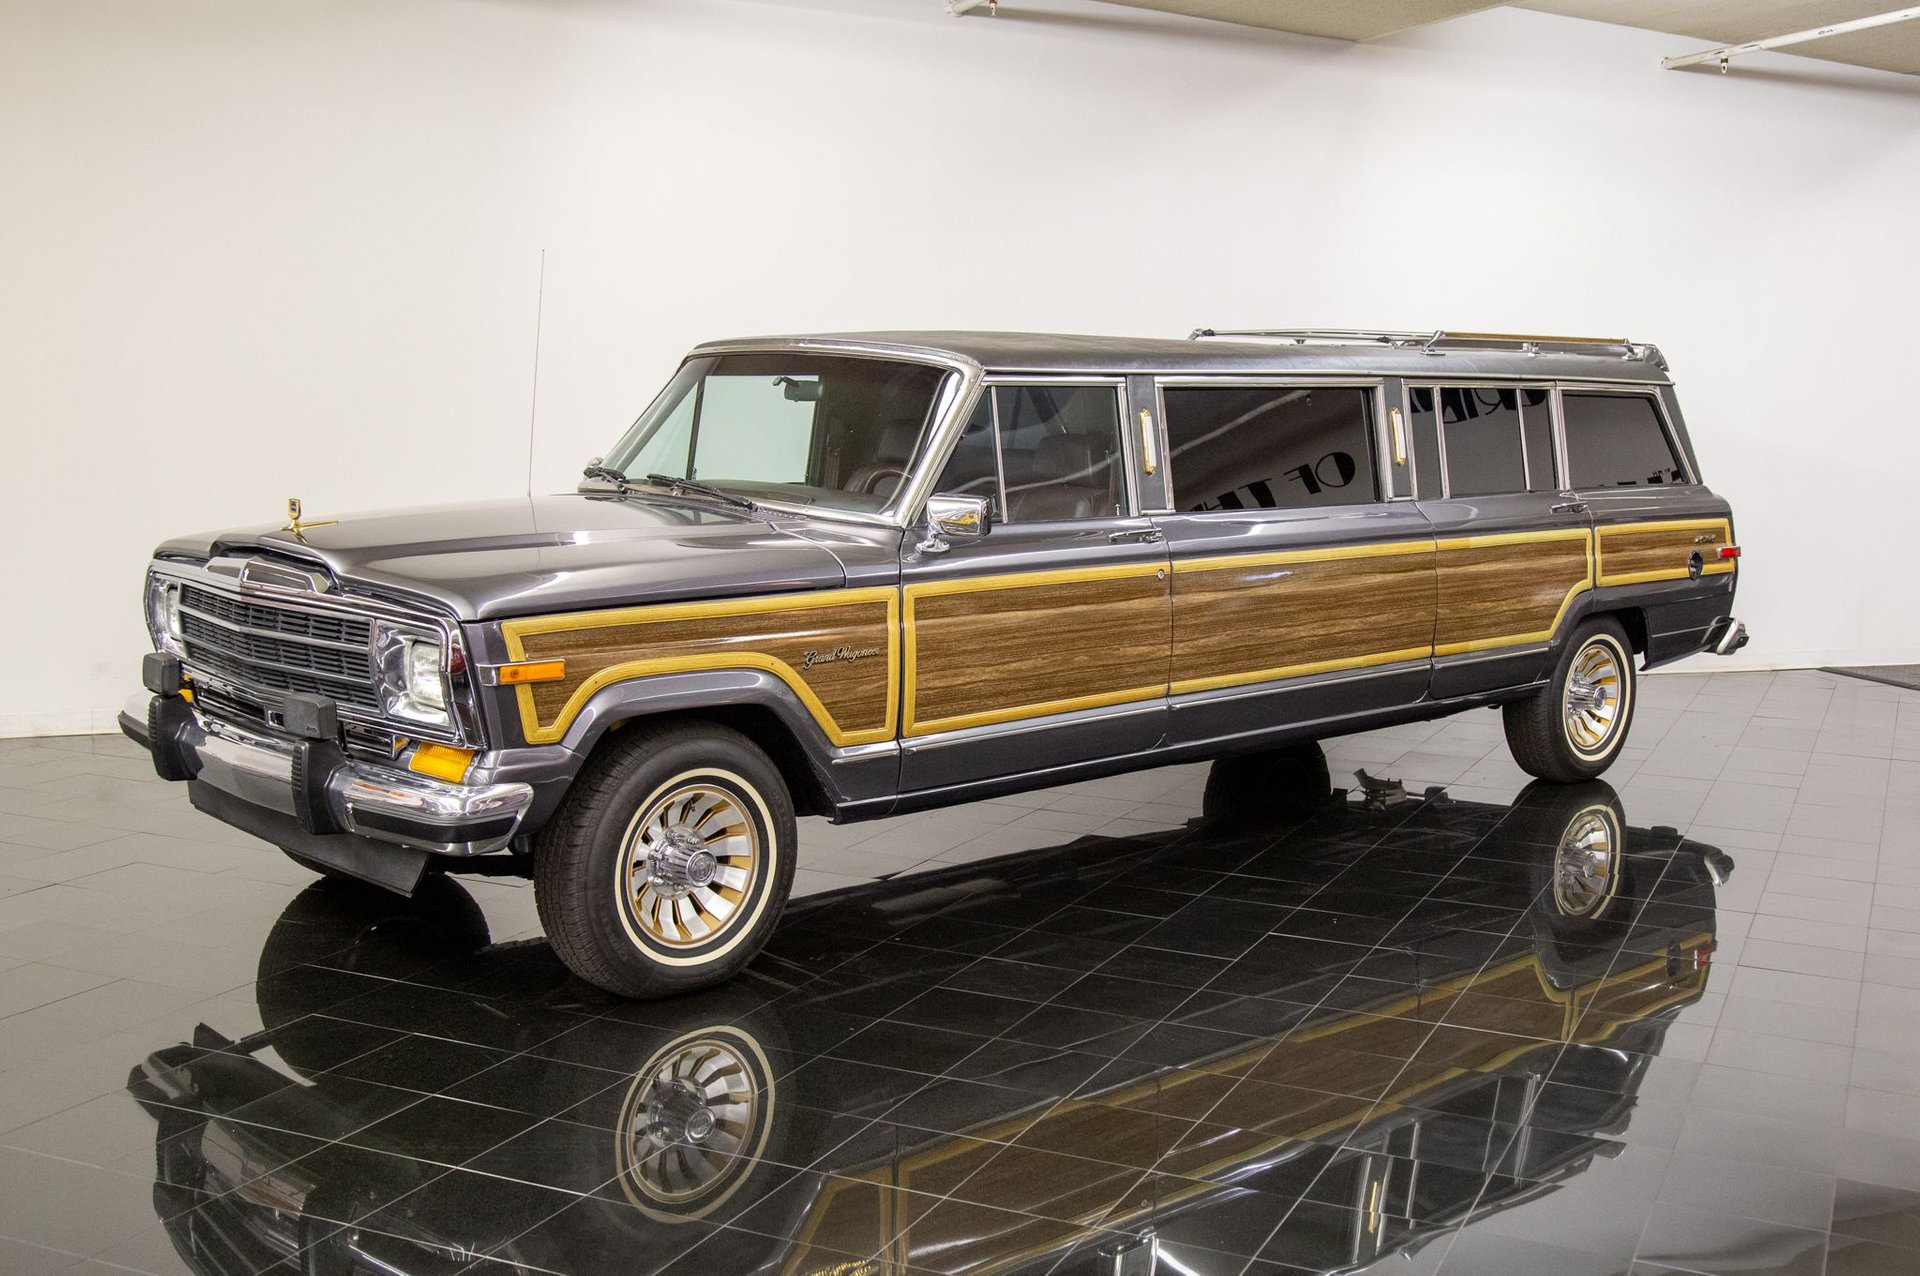 1988 jeep grand wagoneer for sale st louis car museum 1988 jeep grand wagoneer for sale st